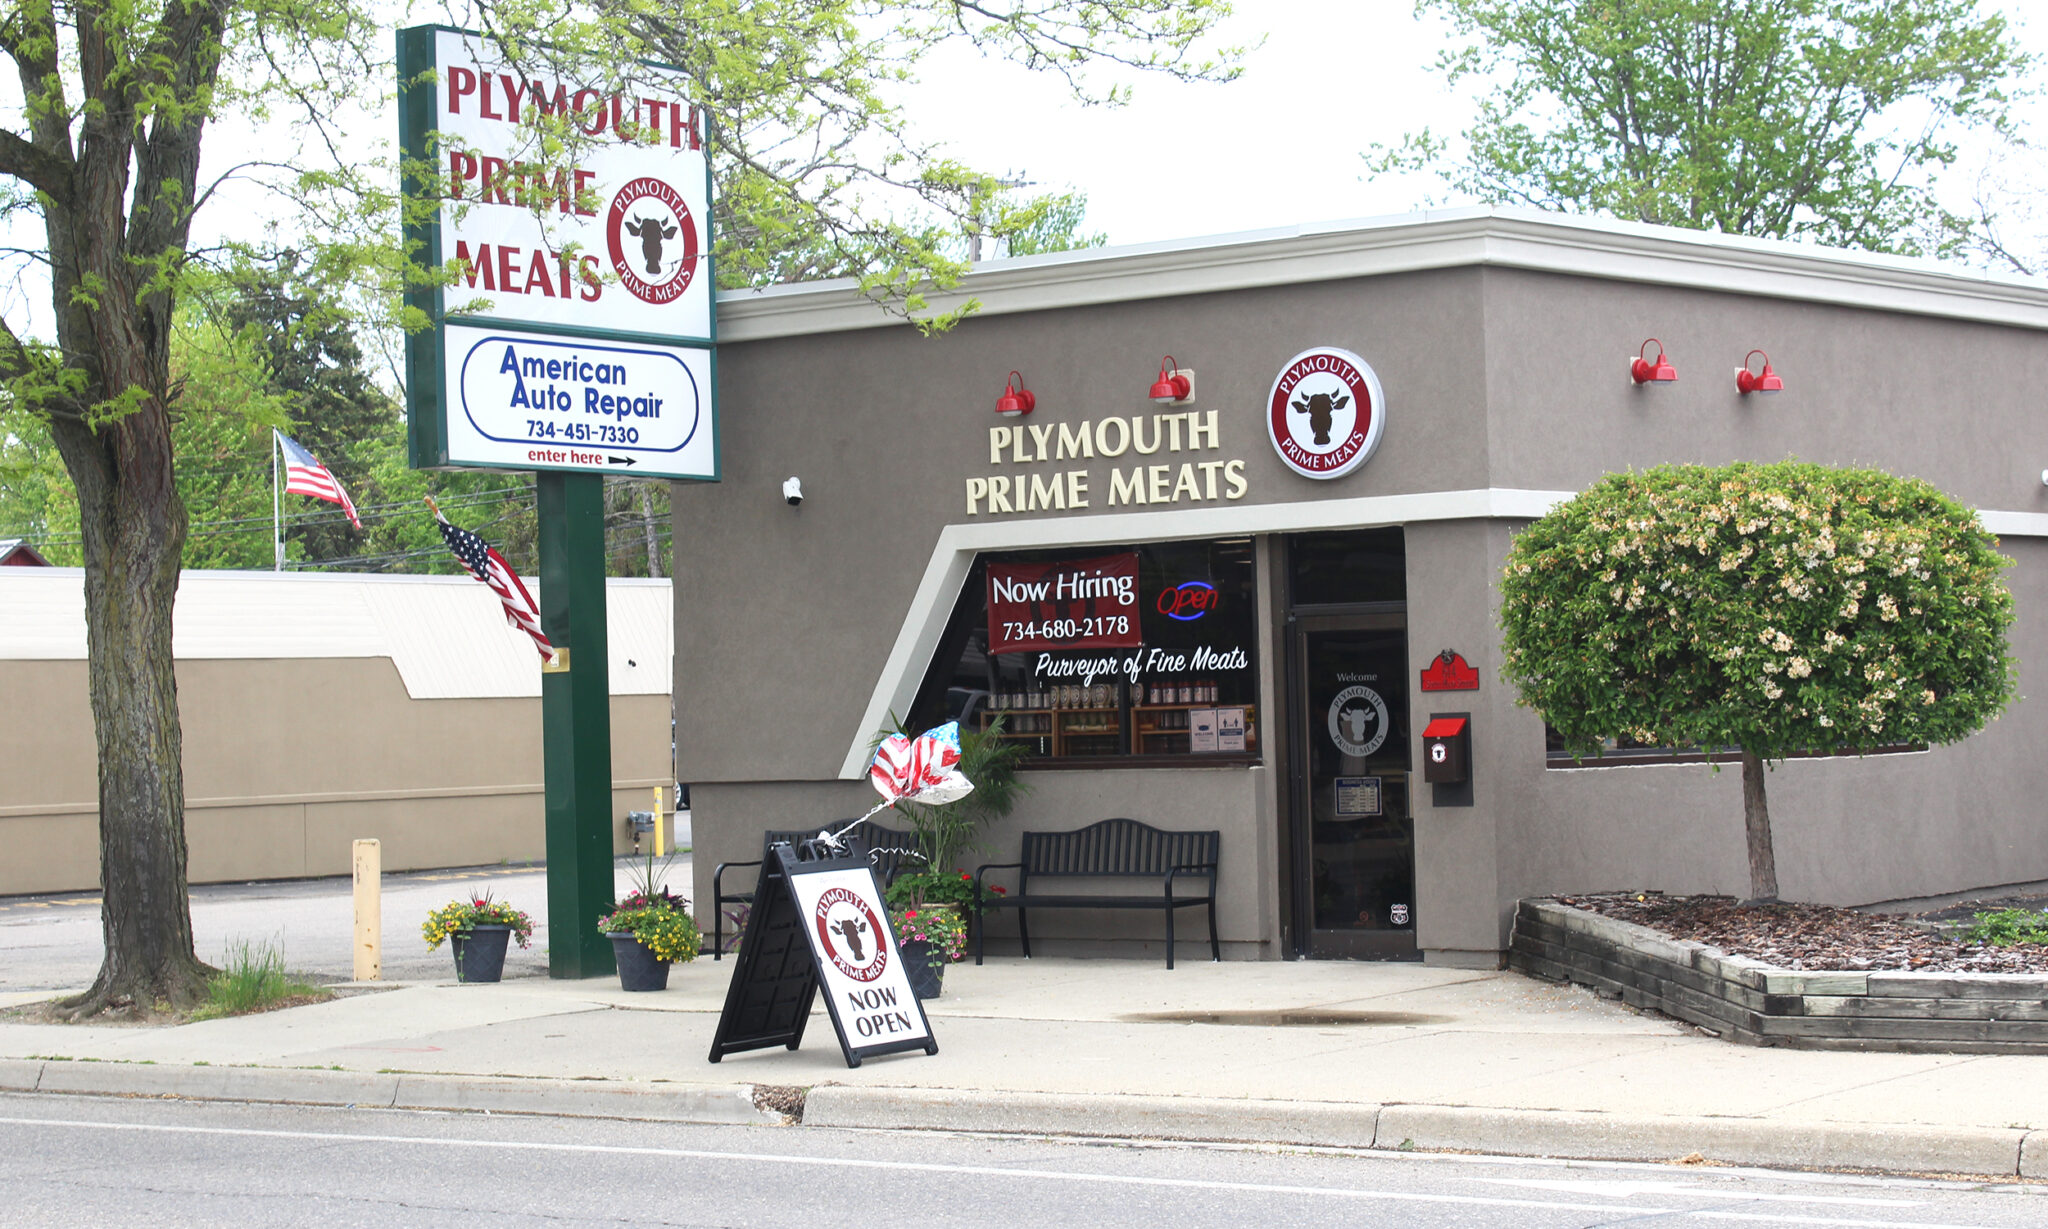 Plymouth Prime Meats building from across the street